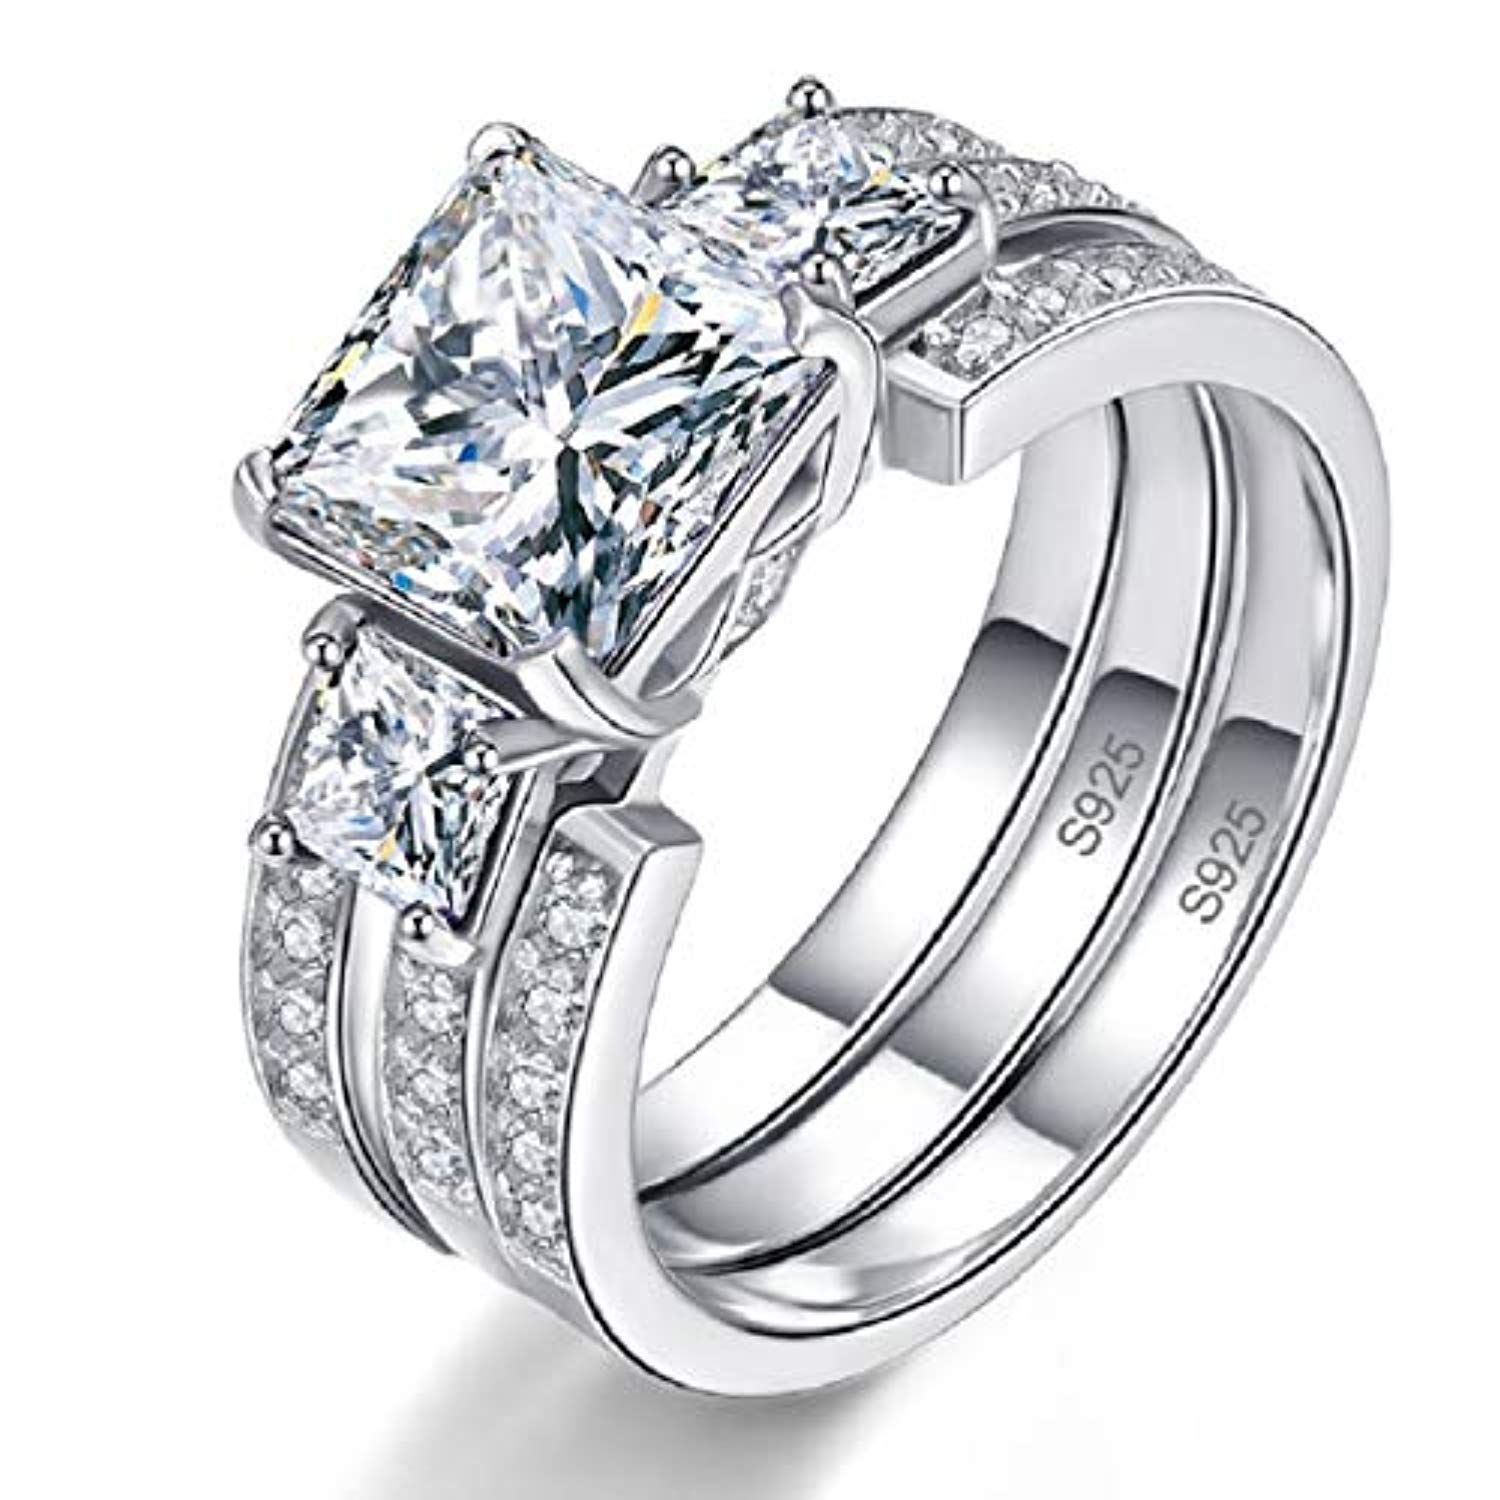 Wedding Engagement Rings Bridal Set For Women 925 Sterling Silver Cz Past Present F Silver Wedding Rings Sets Silver Wedding Rings Engagement Rings Bridal Sets